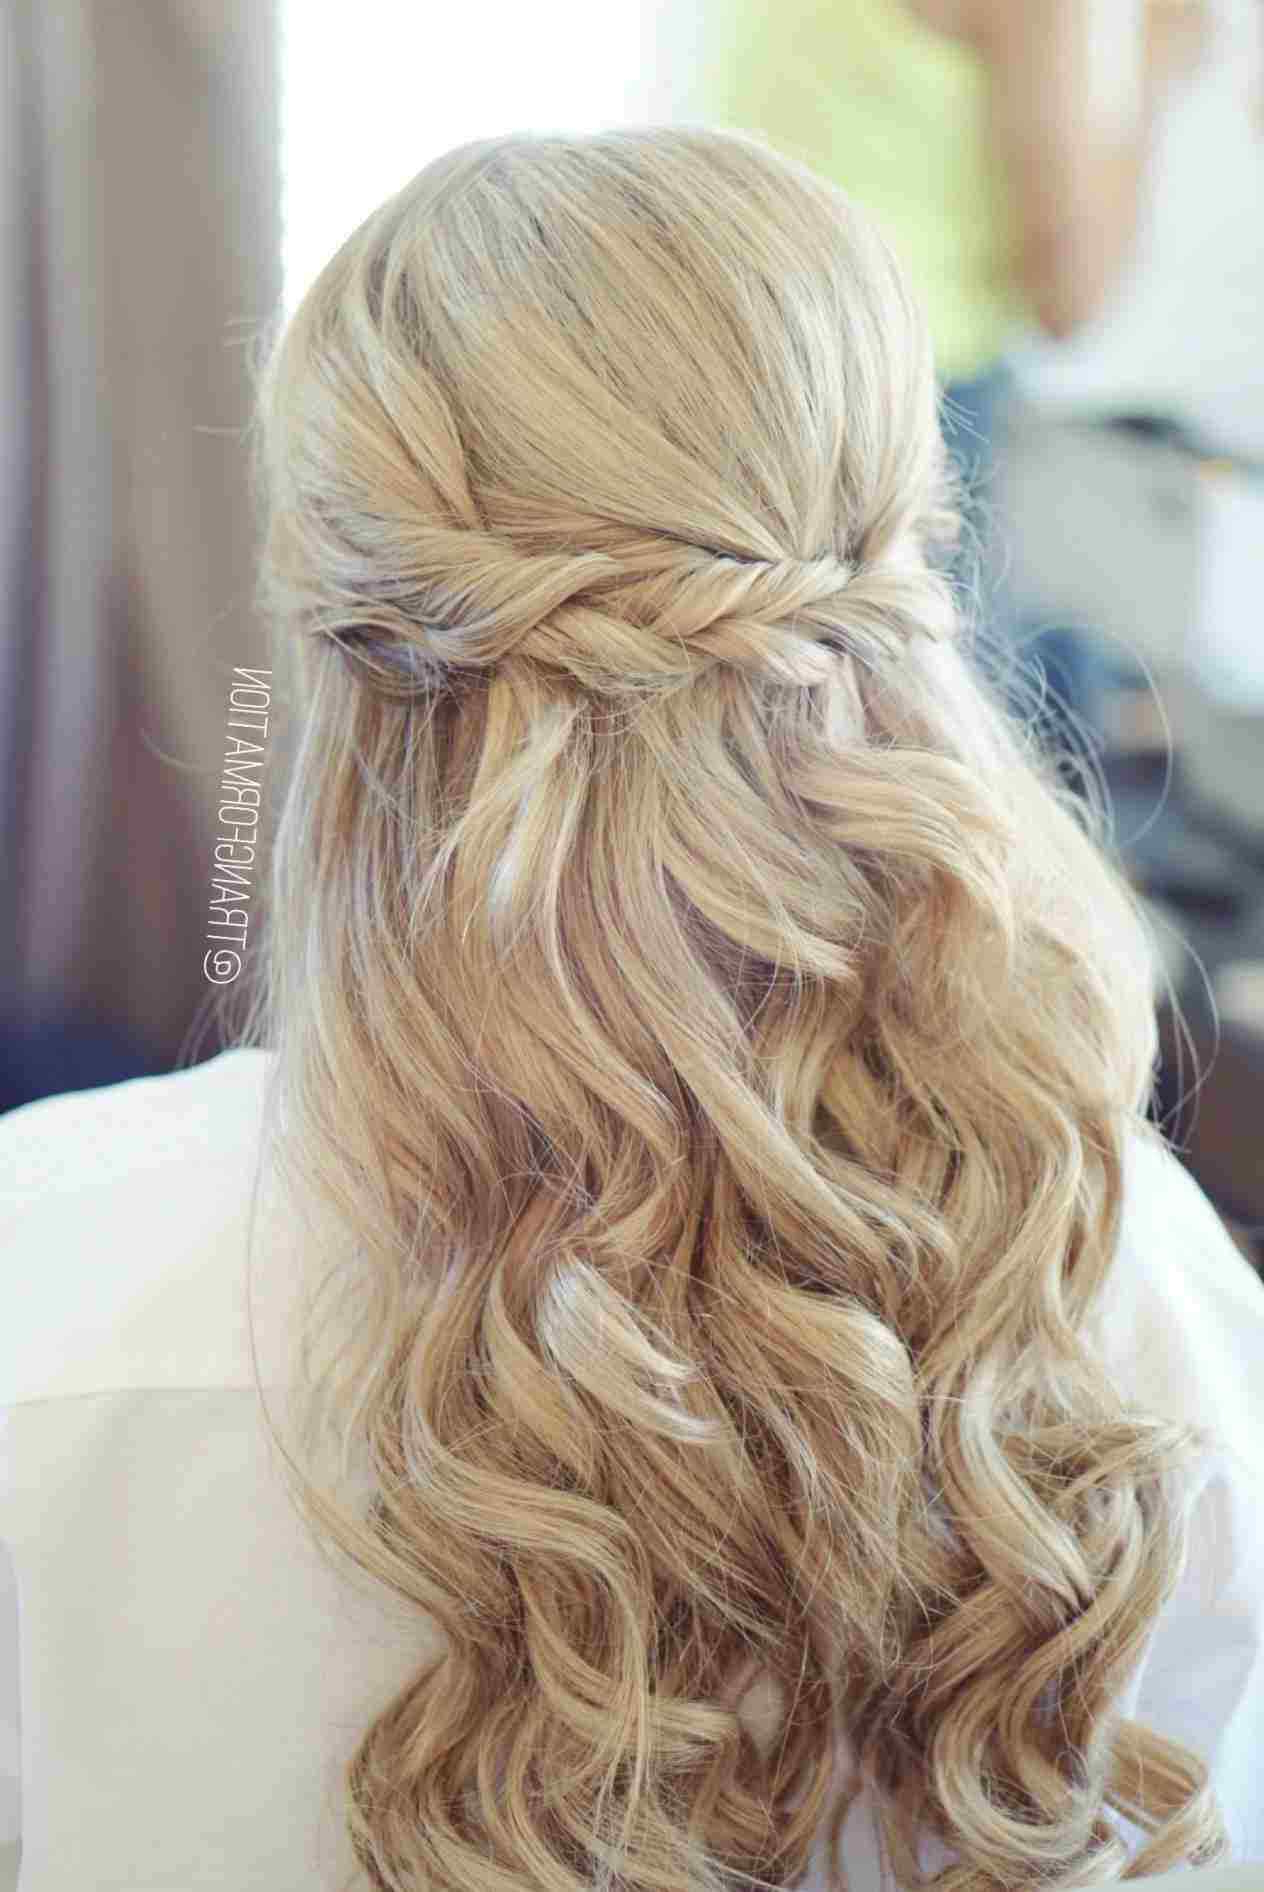 Well Liked Medium Hairstyles Half Up Pertaining To Wedding Hairstyles Half Up Half Down Medium Length Curls New (View 19 of 20)